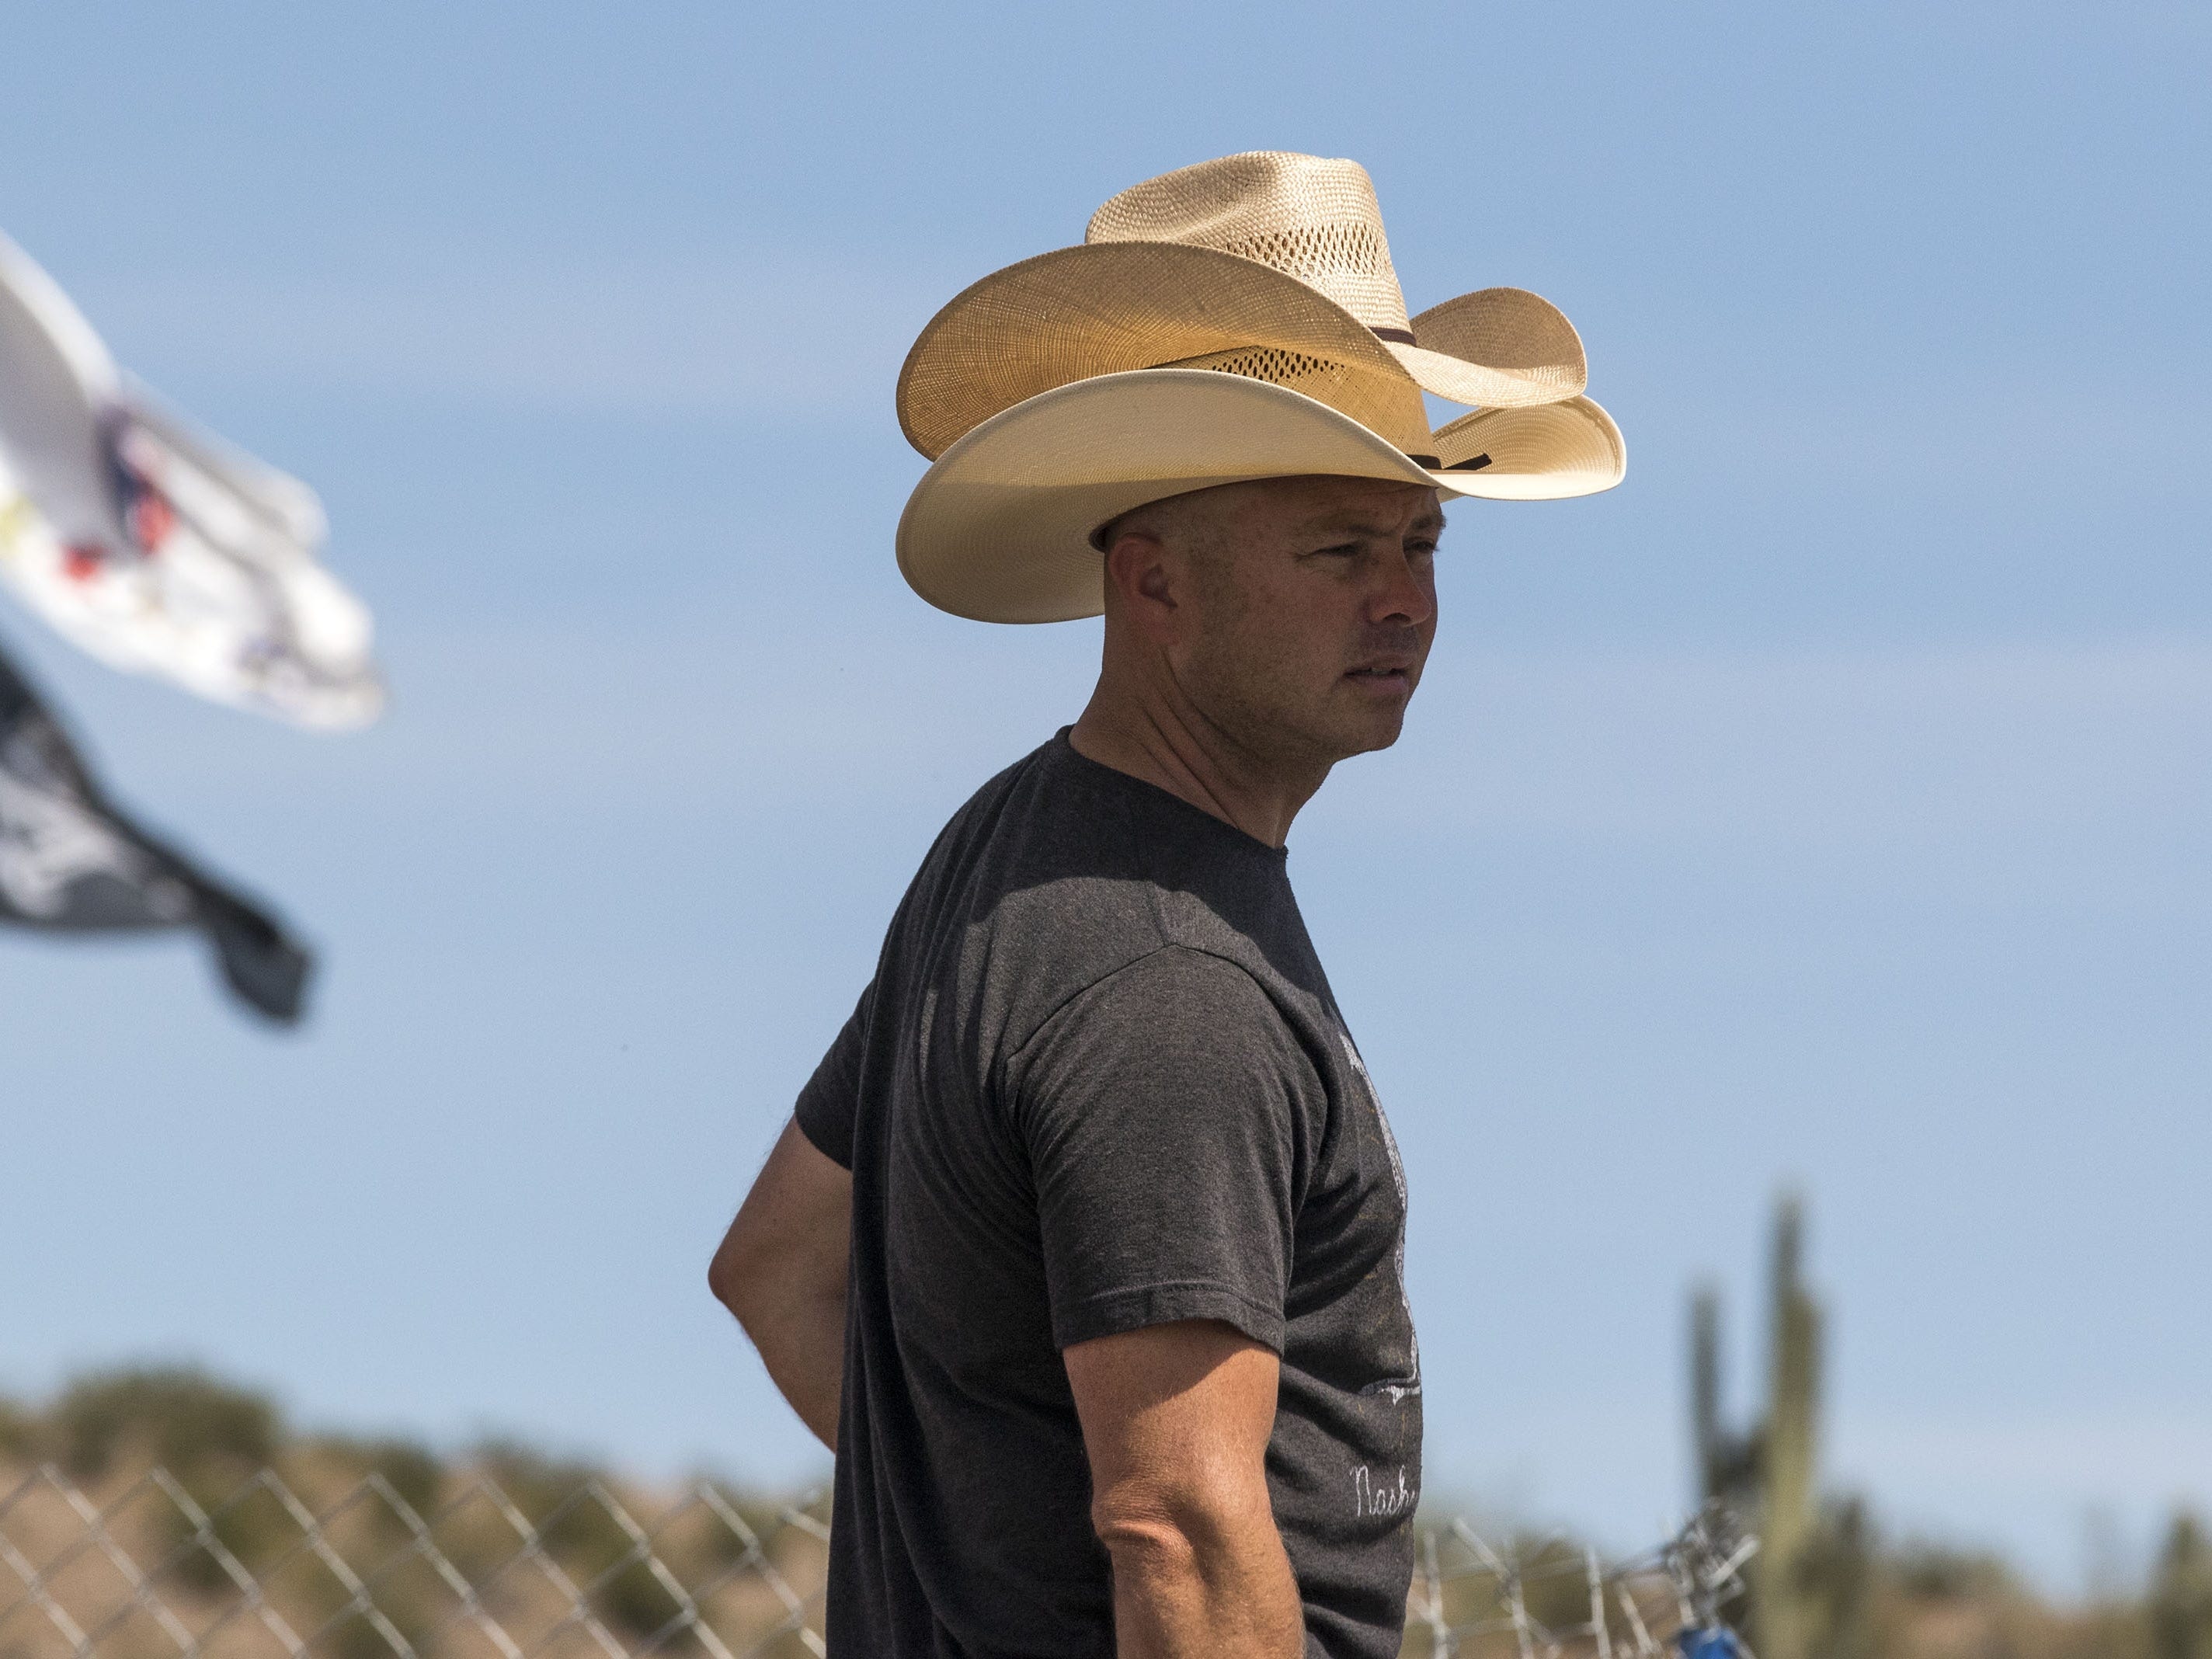 Mike Eaton of Tempe wears two cowboy hats during Country Thunder Arizona on Sunday, April 14, 2019, in Florence, Arizona.